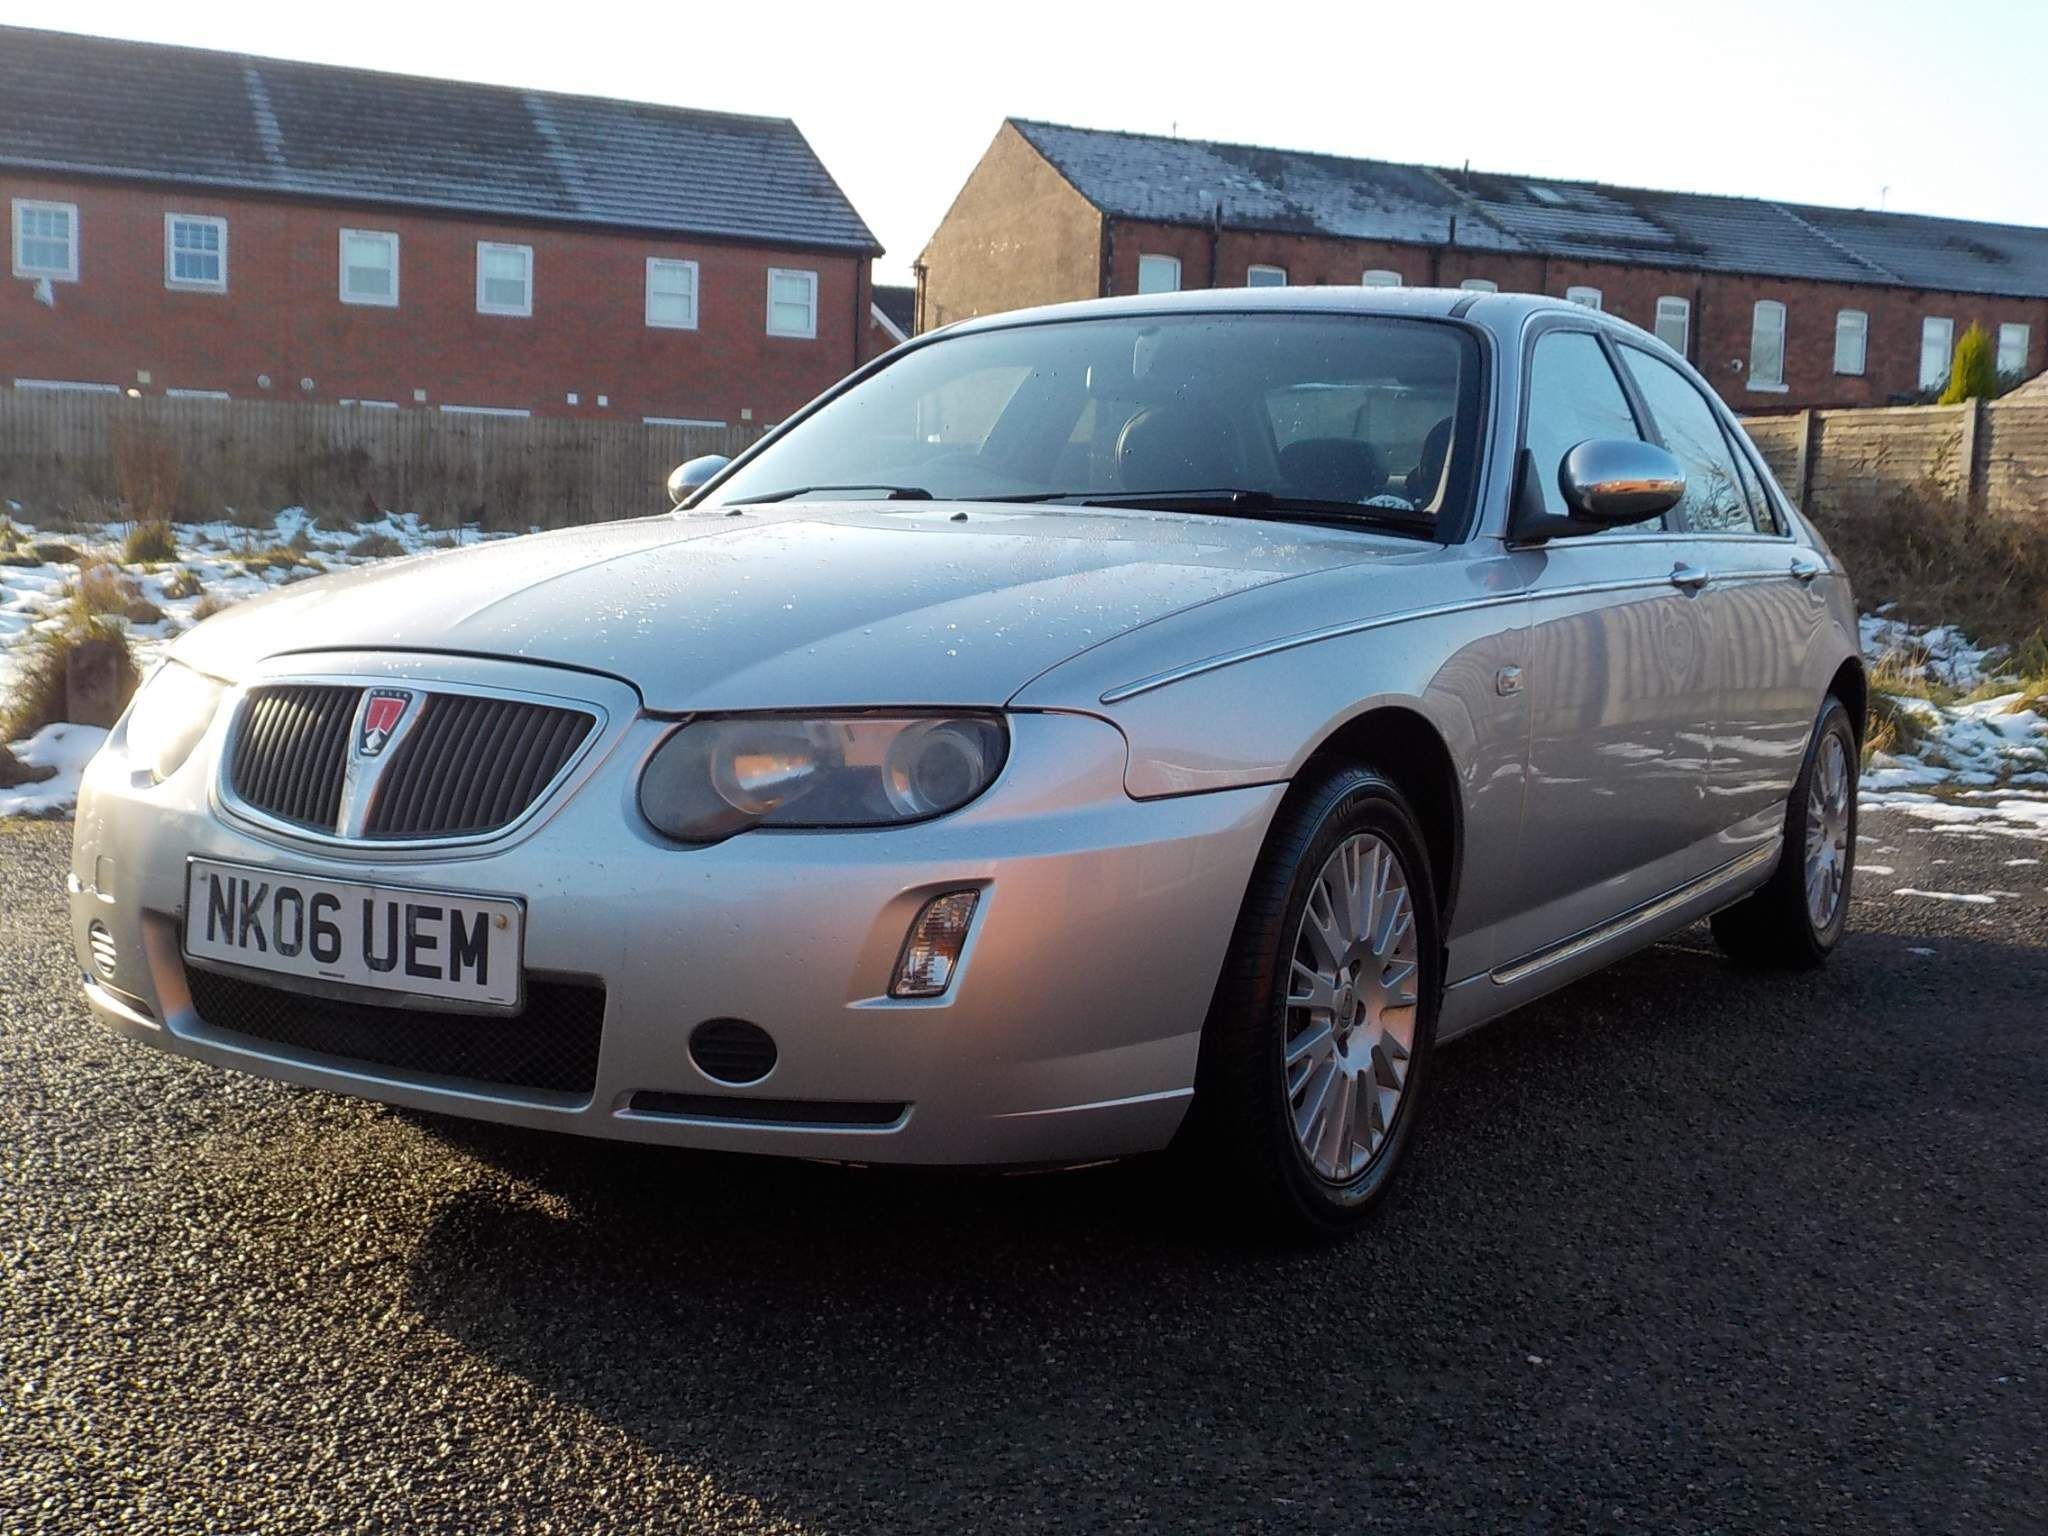 Rover 75 2.0 CDT Classic 4dr